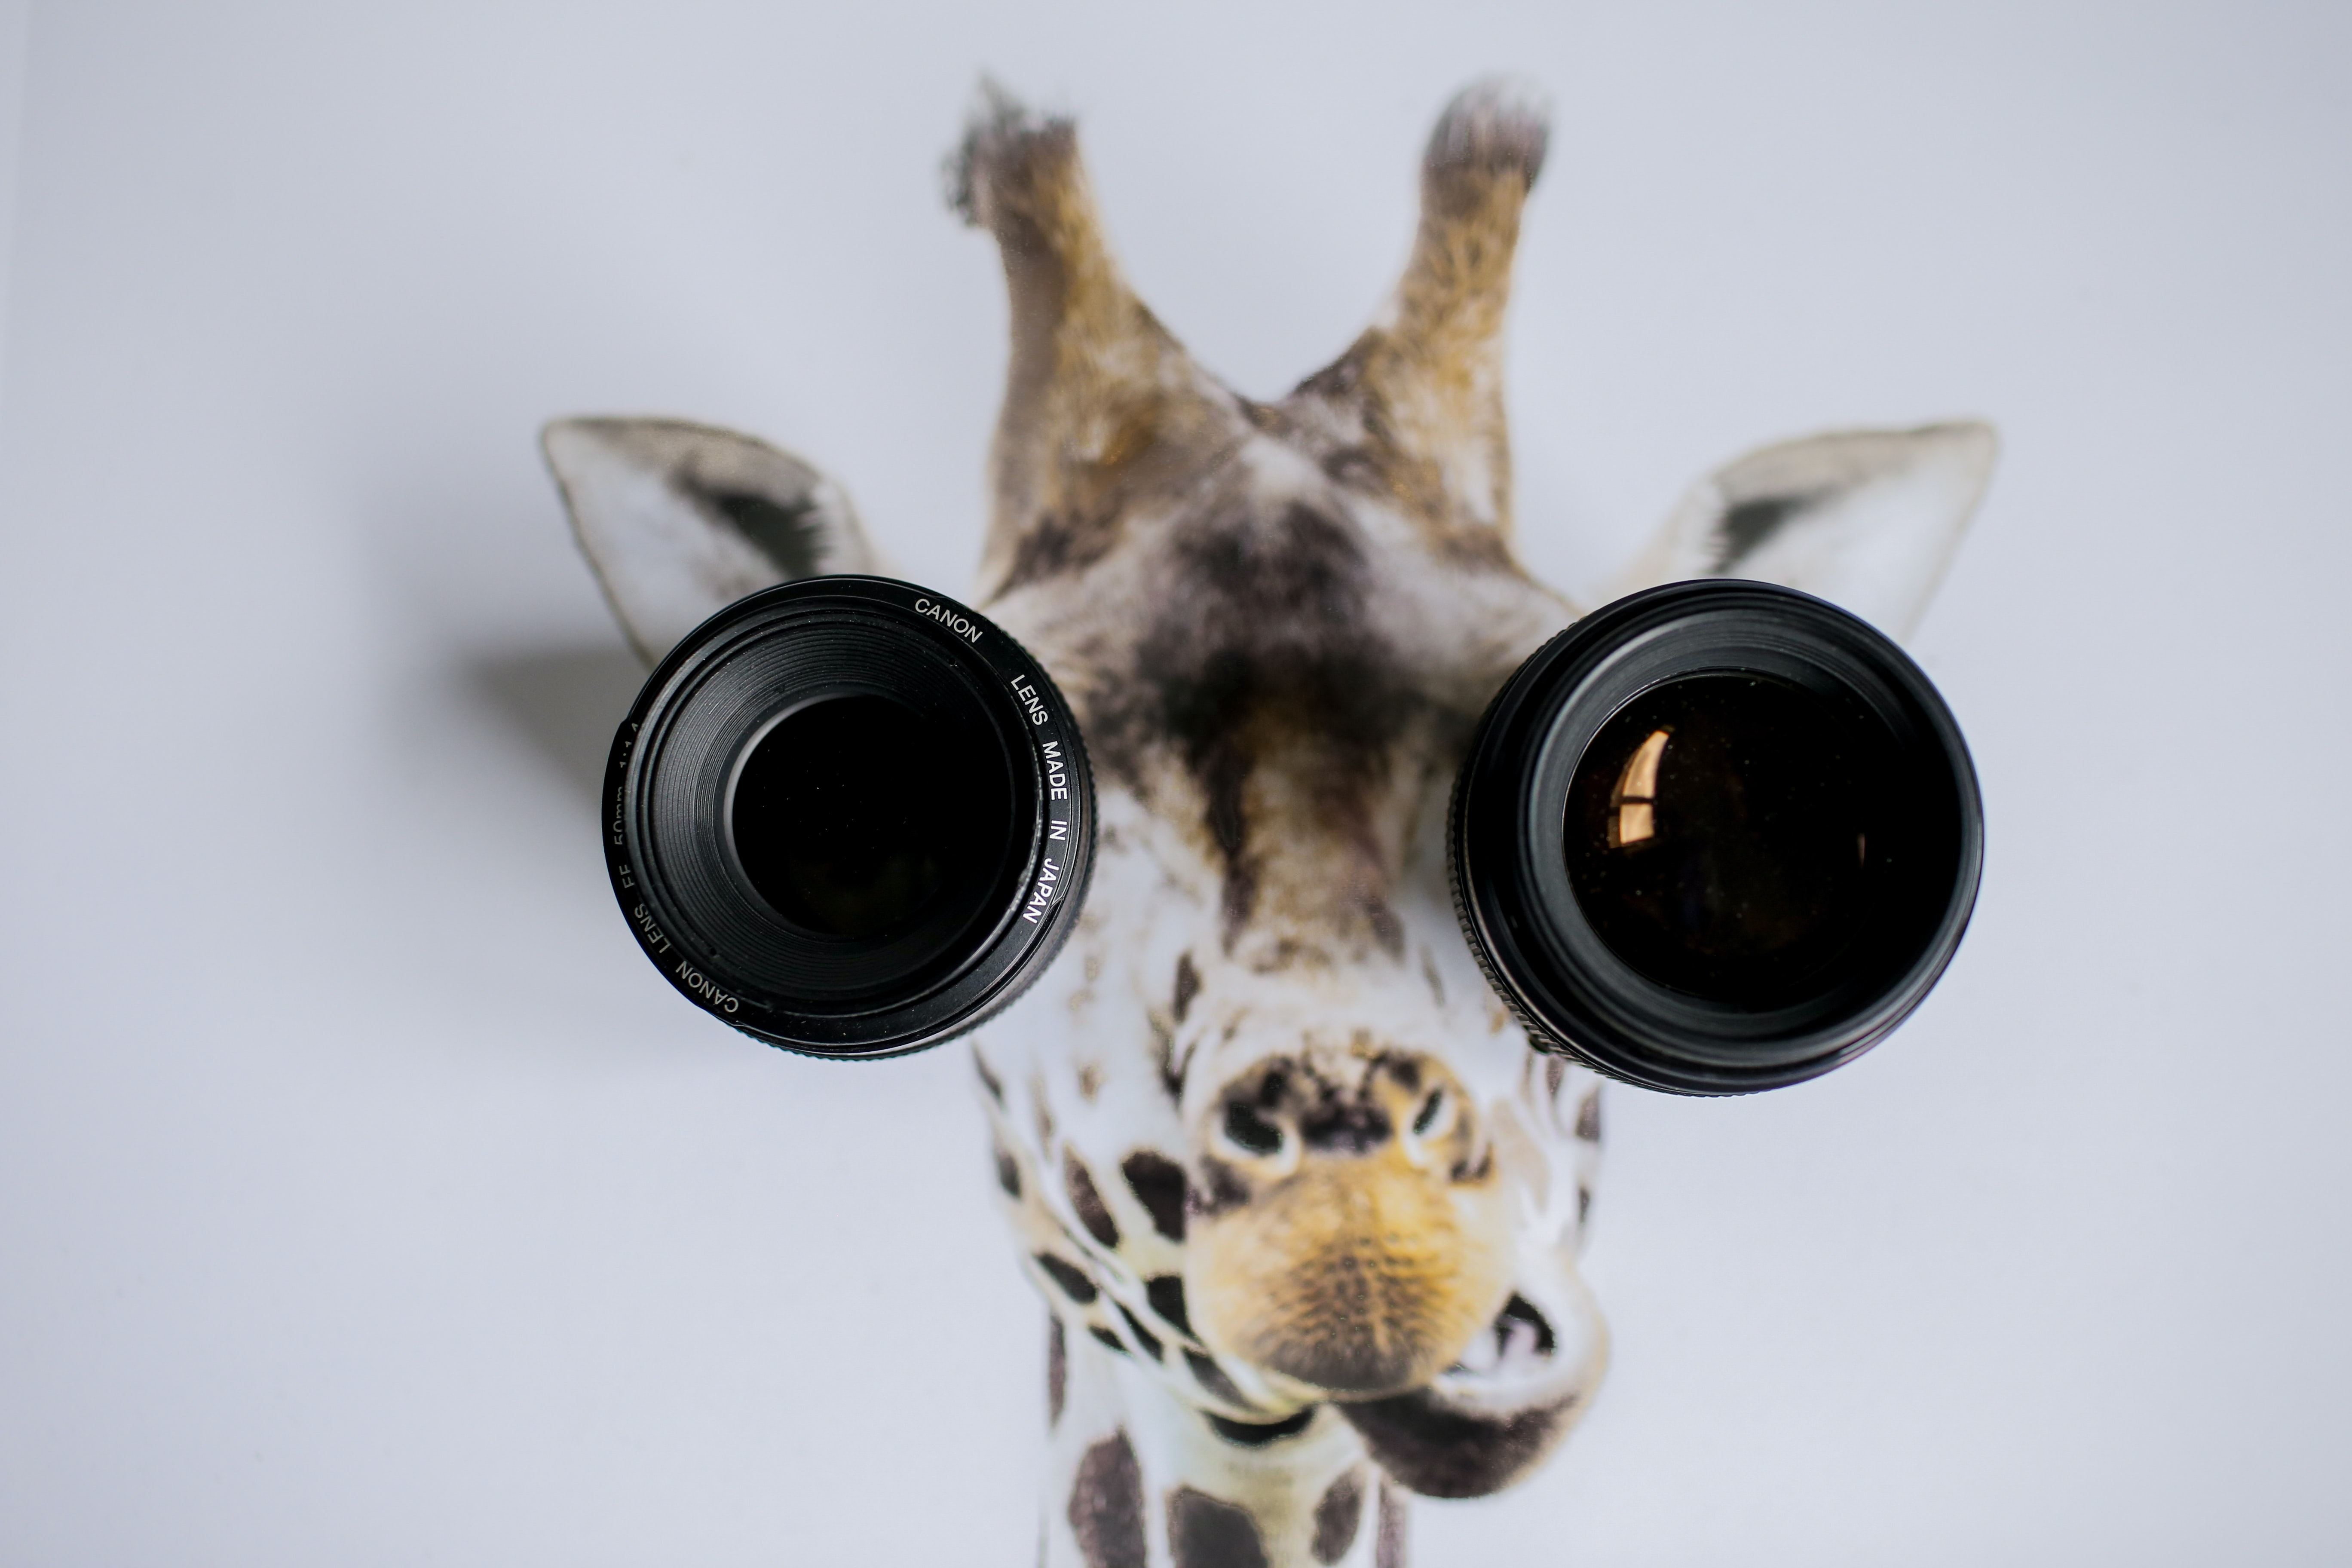 Two camera lenses on a picture of a giraffe's head